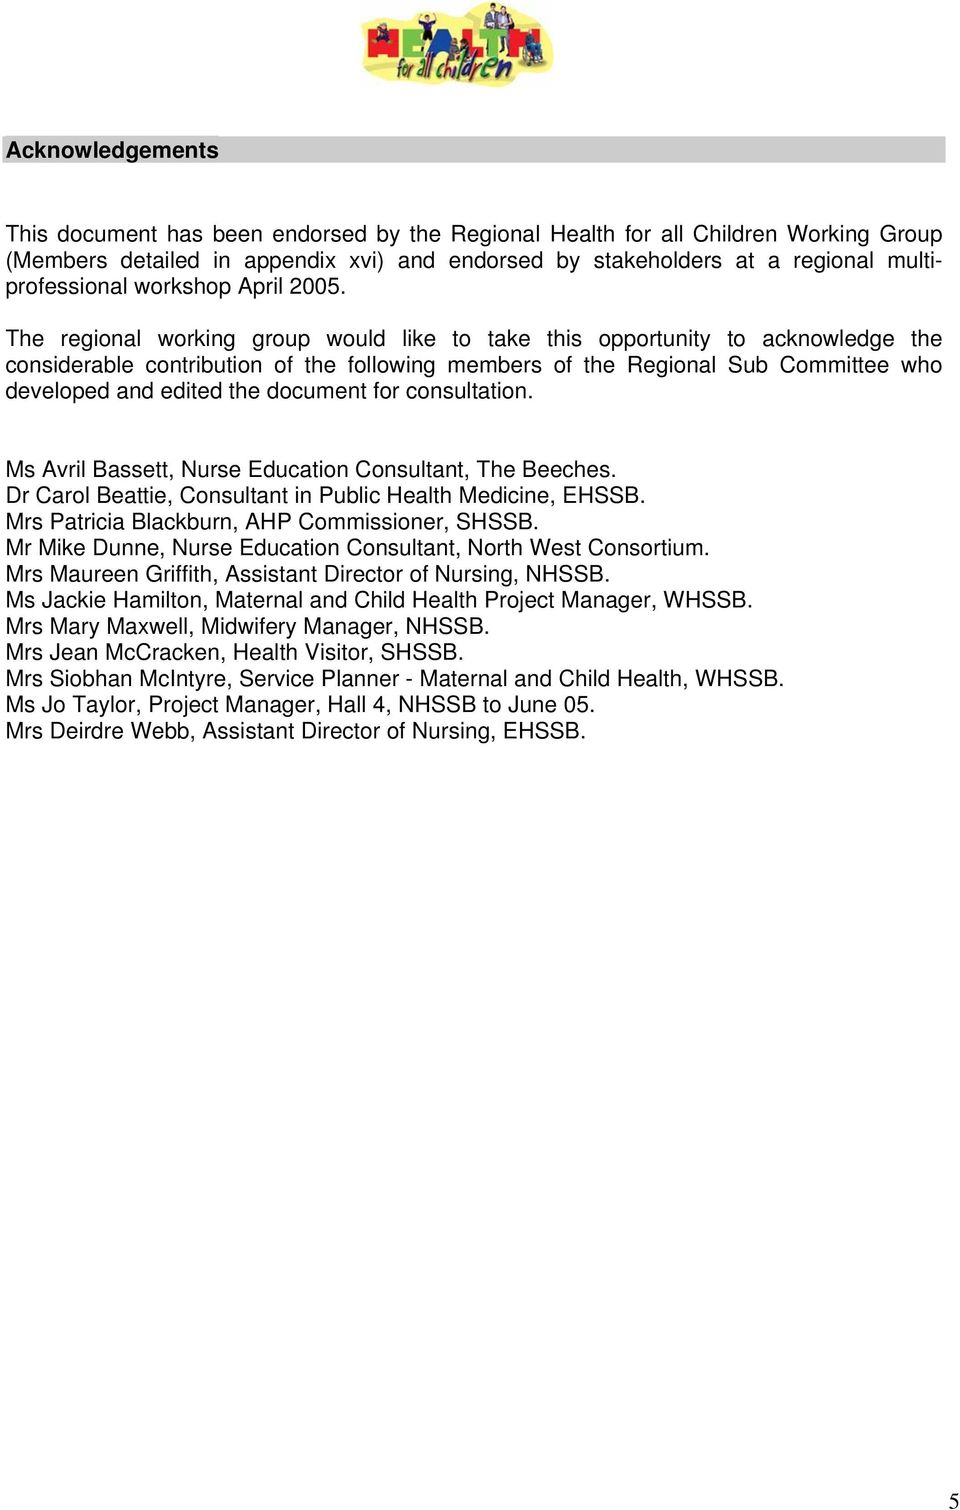 The regional working group would like to take this opportunity to acknowledge the considerable contribution of the following members of the Regional Sub Committee who developed and edited the